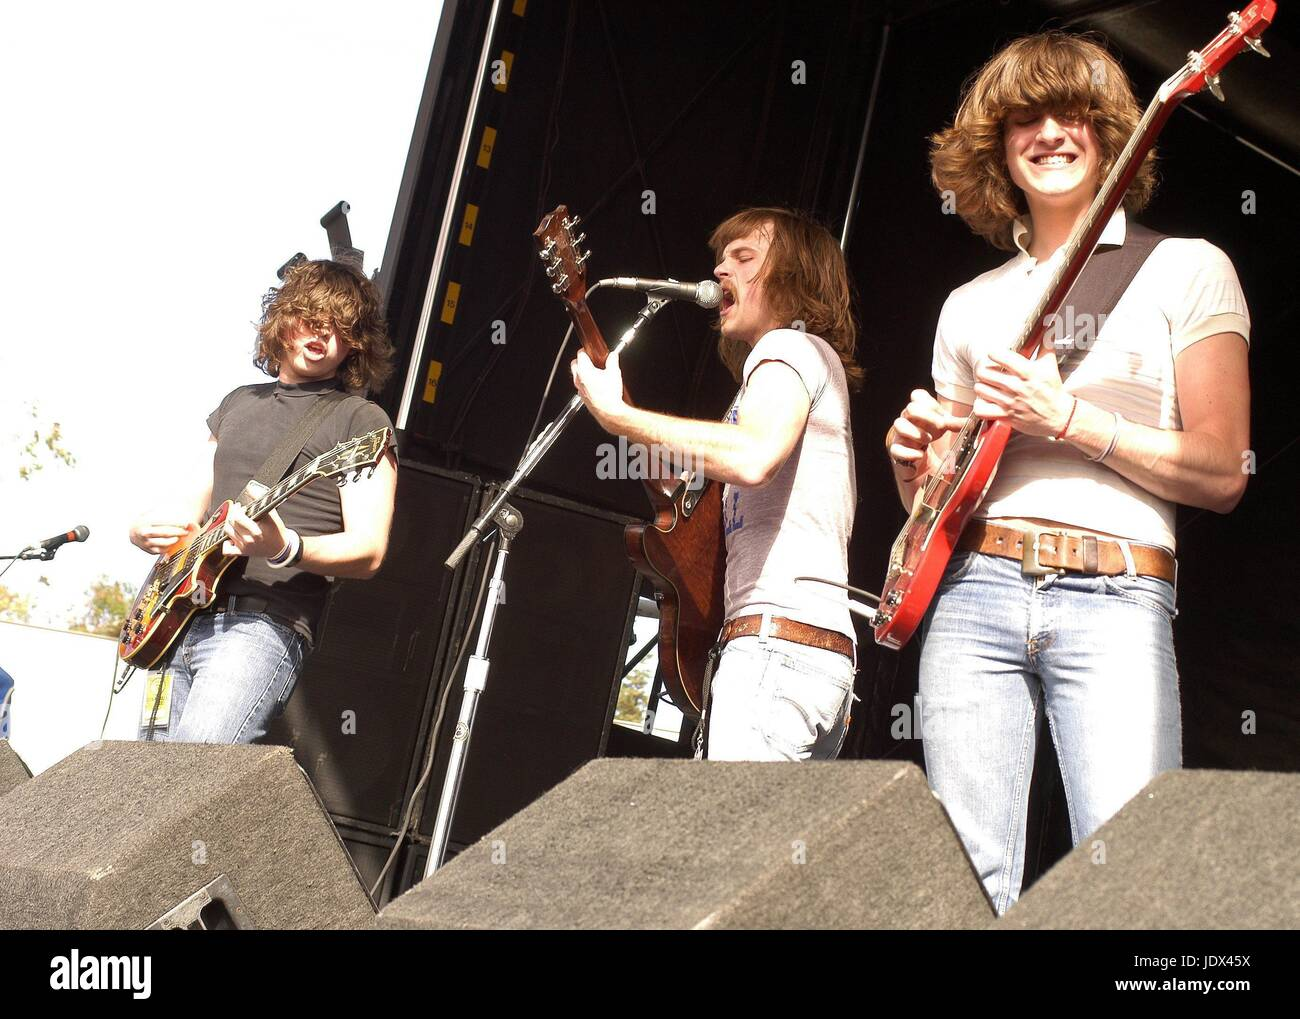 Kings of Leon performing at Lollapalooza, Mountain View, CA.  August 19, 2003  © Anthony Pidgeon / MediaPunch. - Stock Image